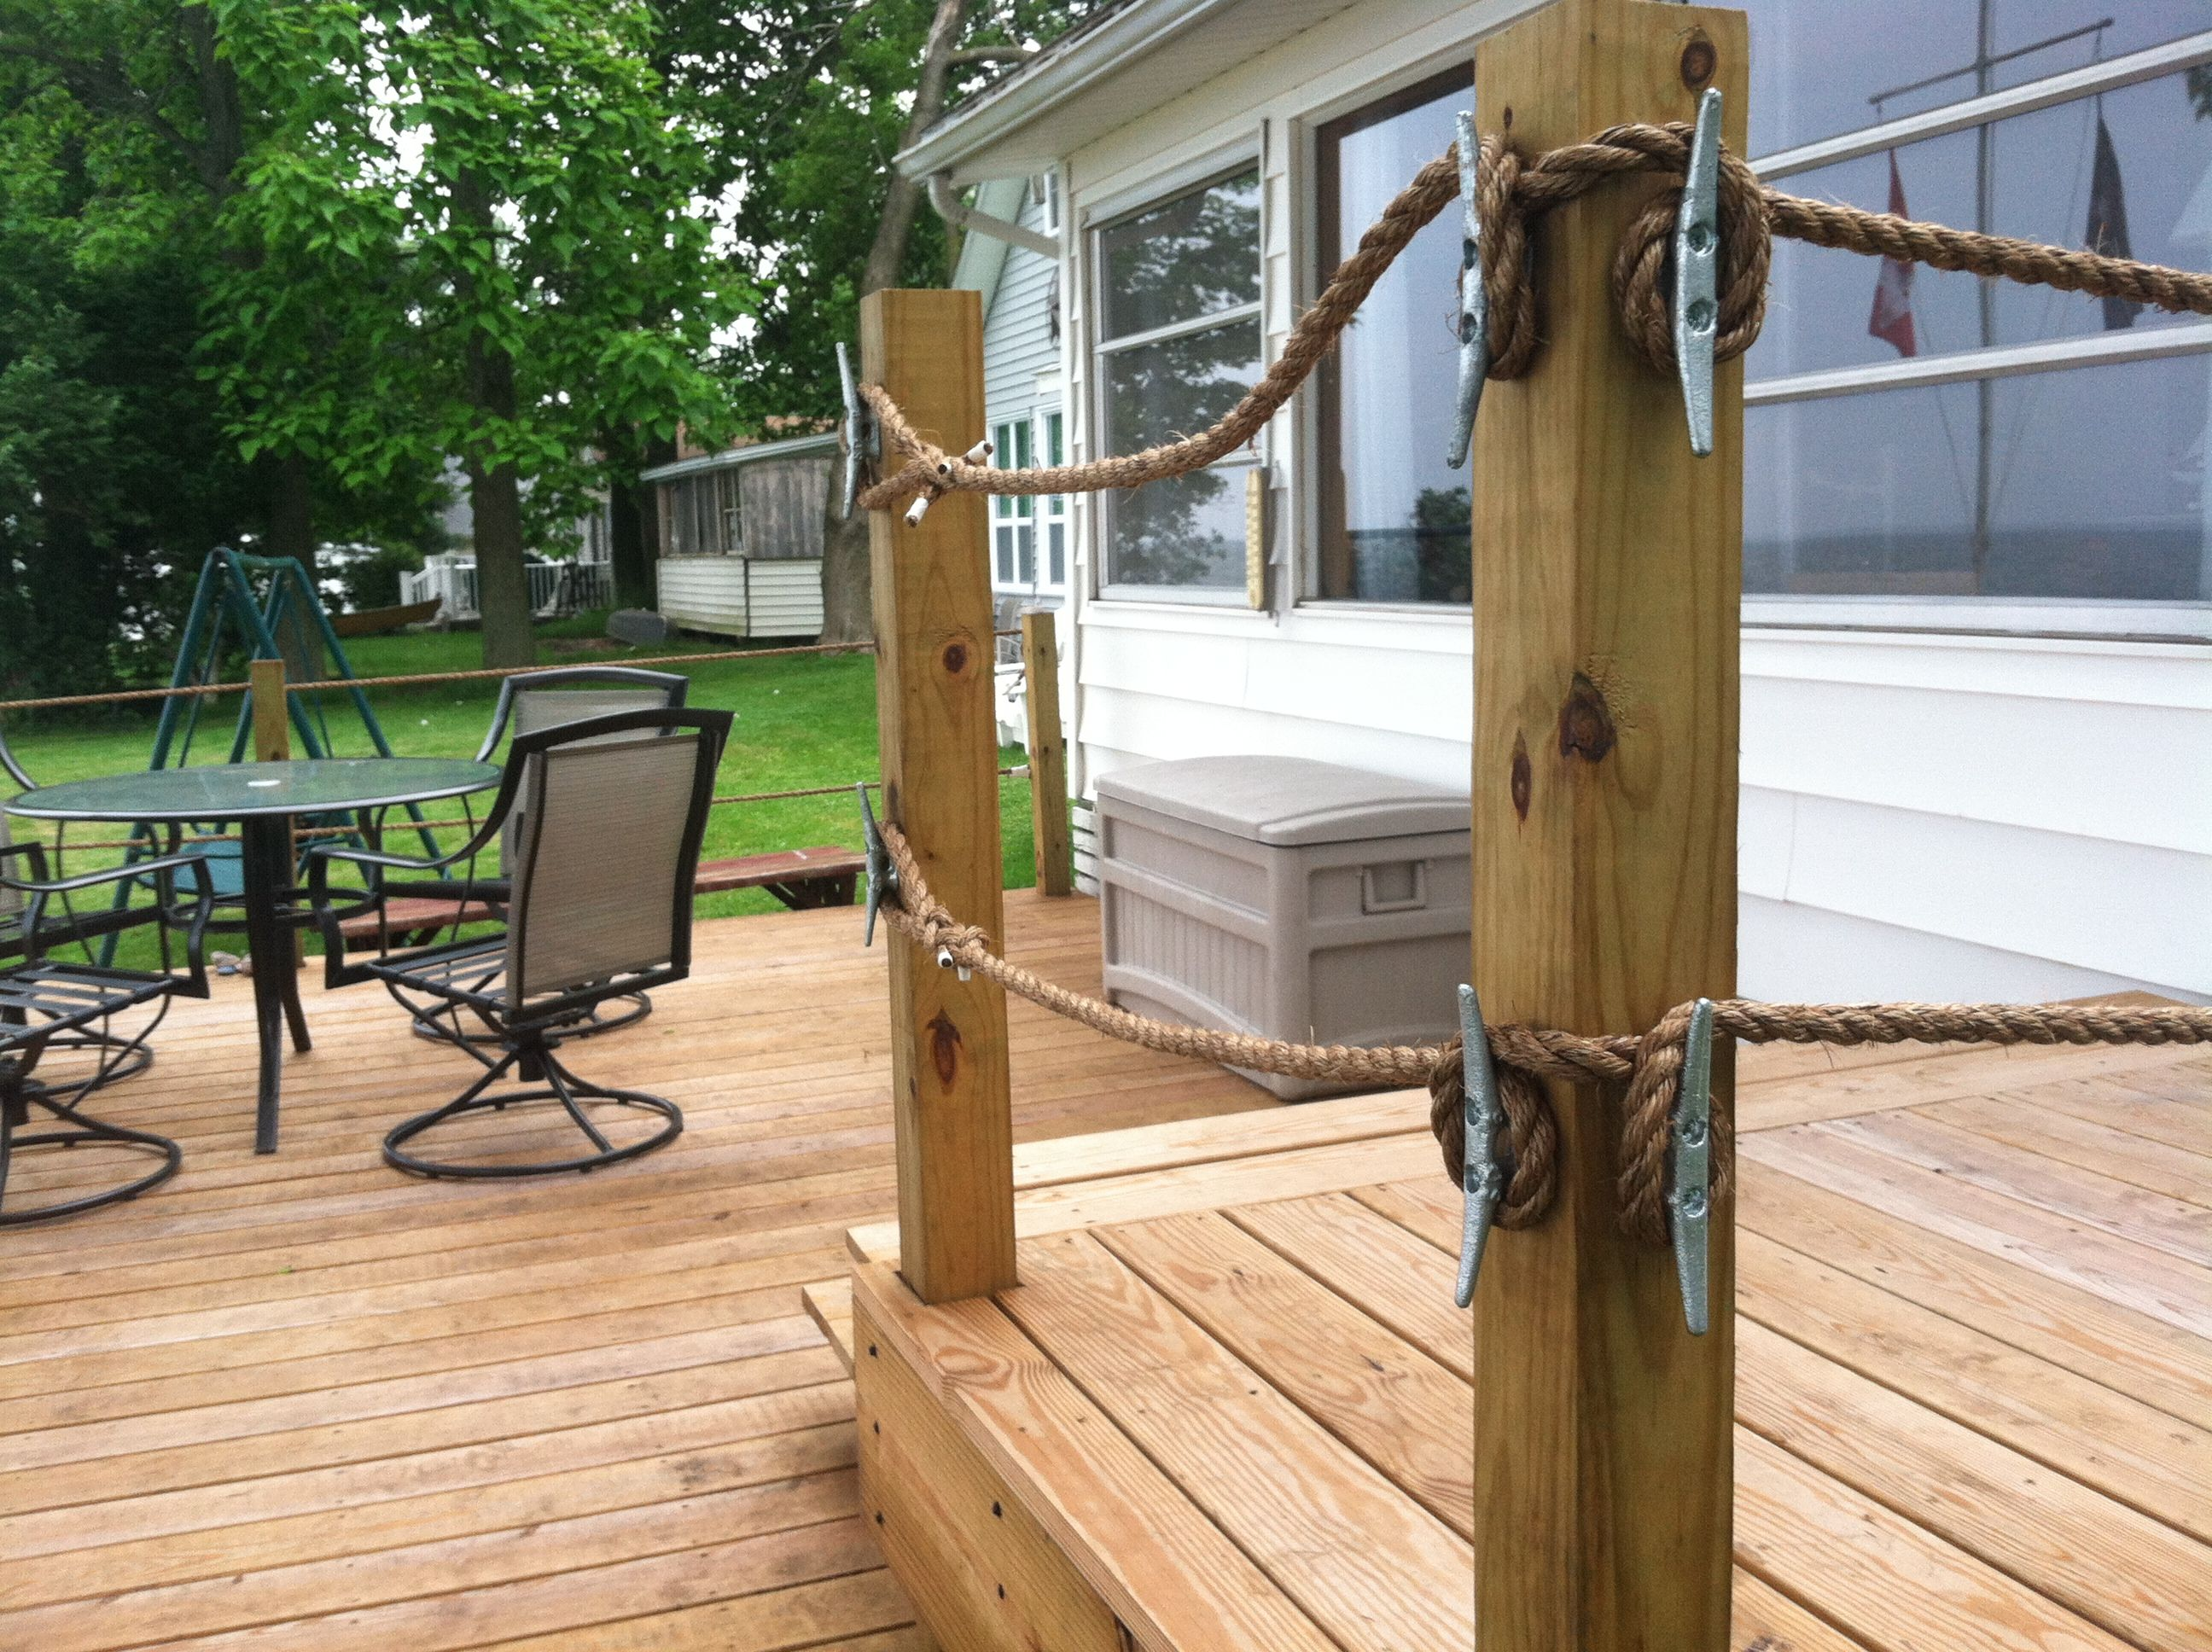 Whipped Synthetic Hemp Rope Garden Decking From RopeandSpliceco - Garden decking rope